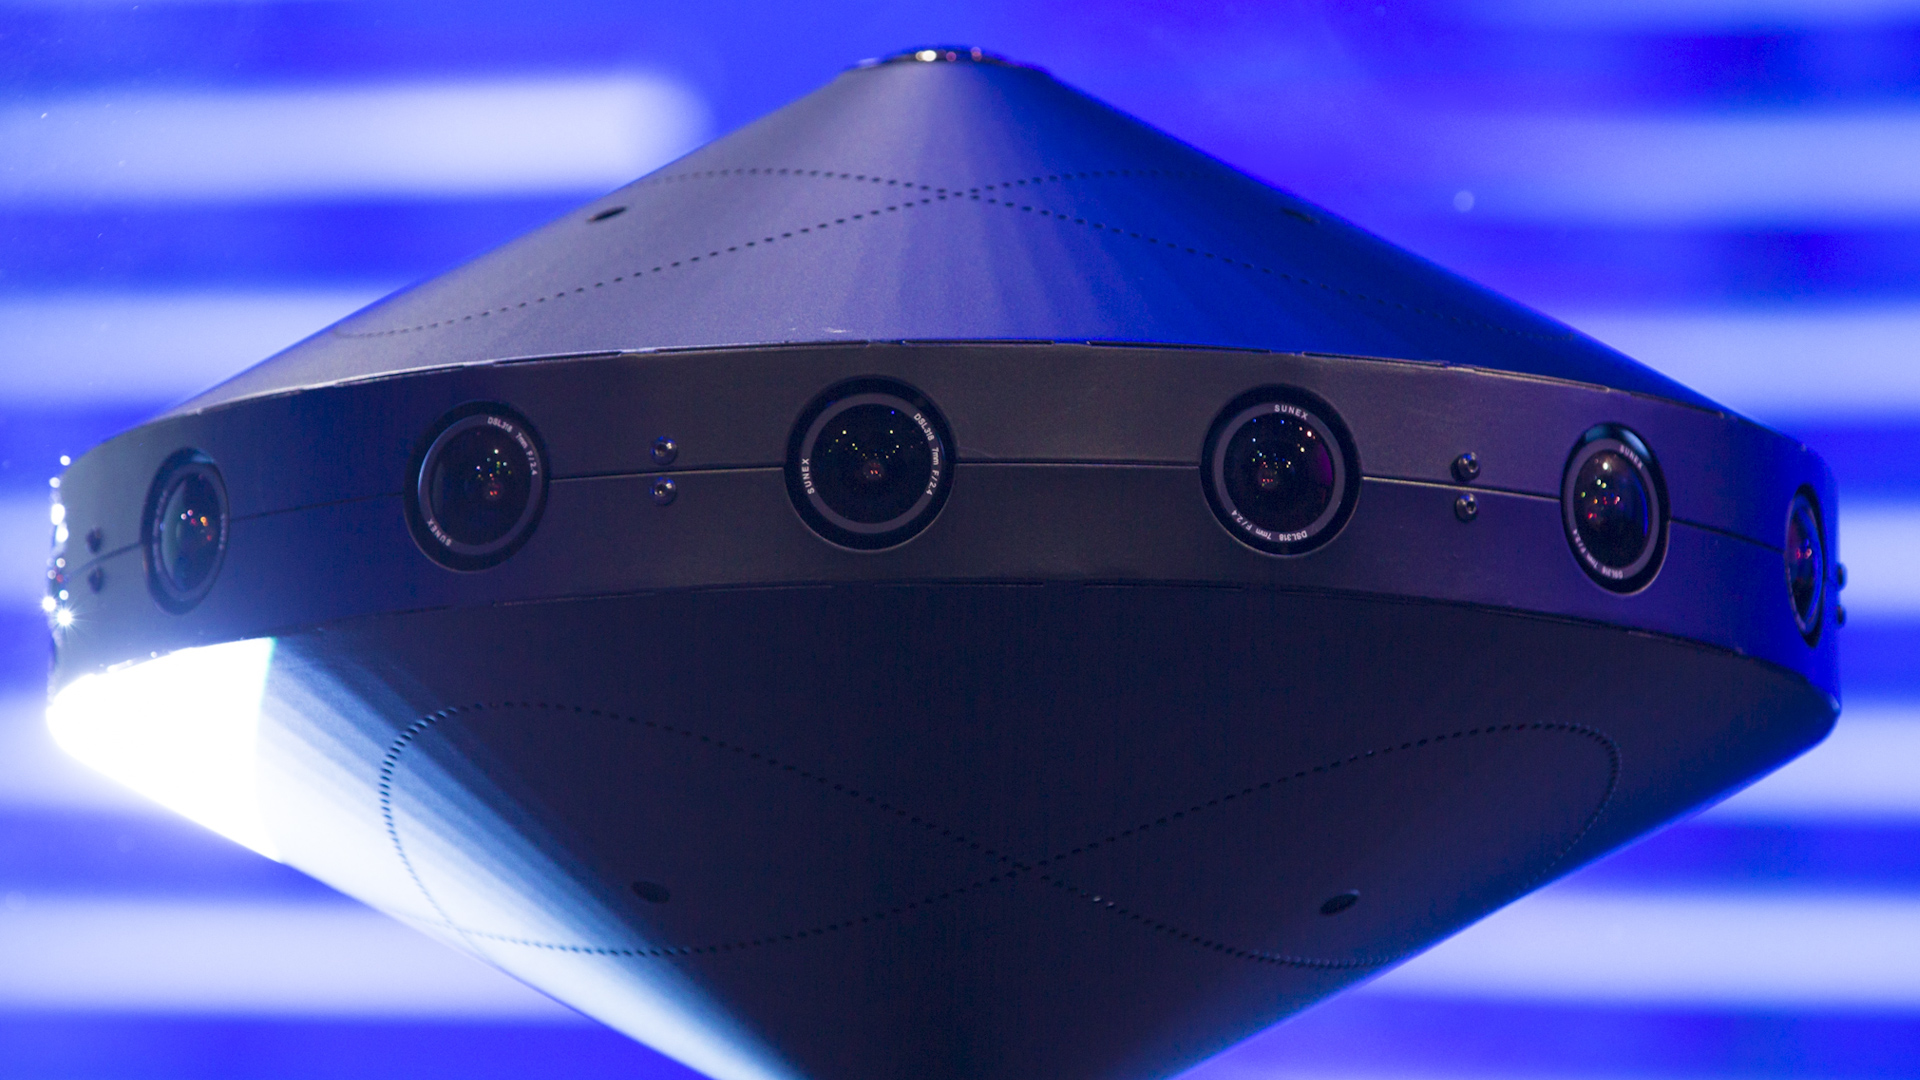 Video: Facebook Surround 360 camera shoots 8K video